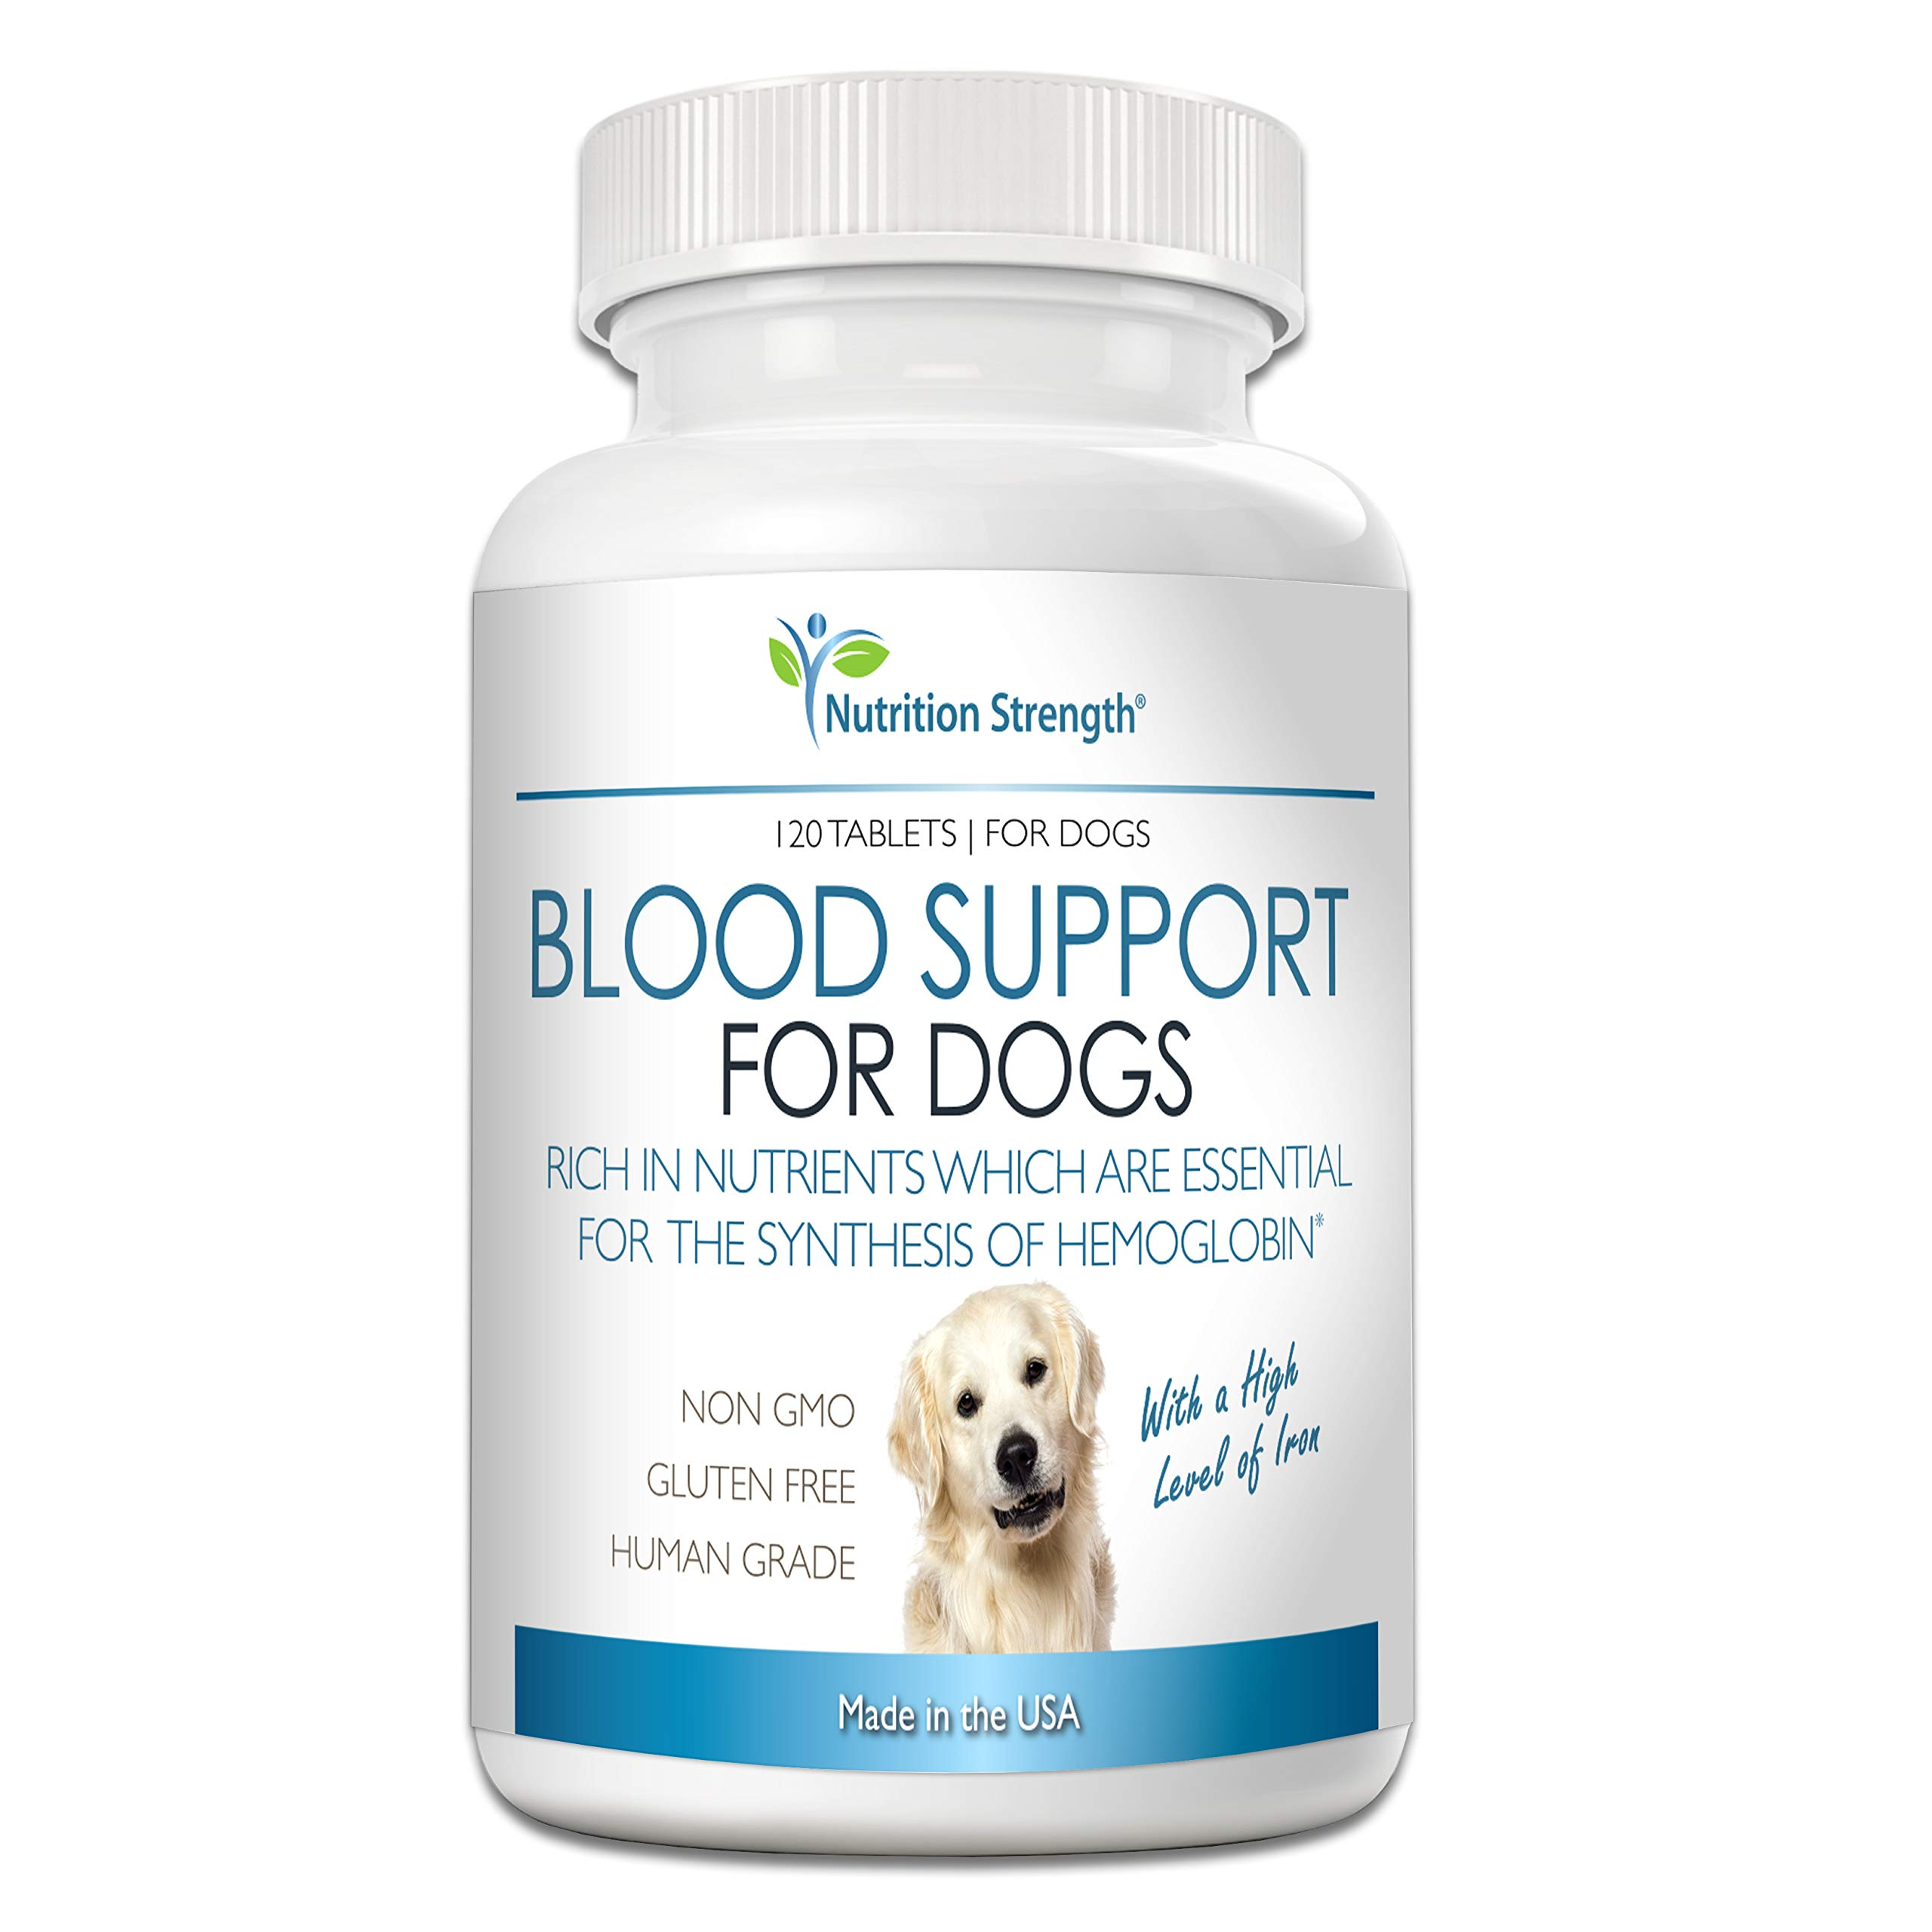 Nutrition Strength Blood Support for Dogs, Supplement for Anemia in Dogs, Promotes Red Blood Cell Health, with a High Level of Iron, Vitamin B12, Organic Spirulina and Purpurea, 120 Chewable Tablets by Nutrition Strength